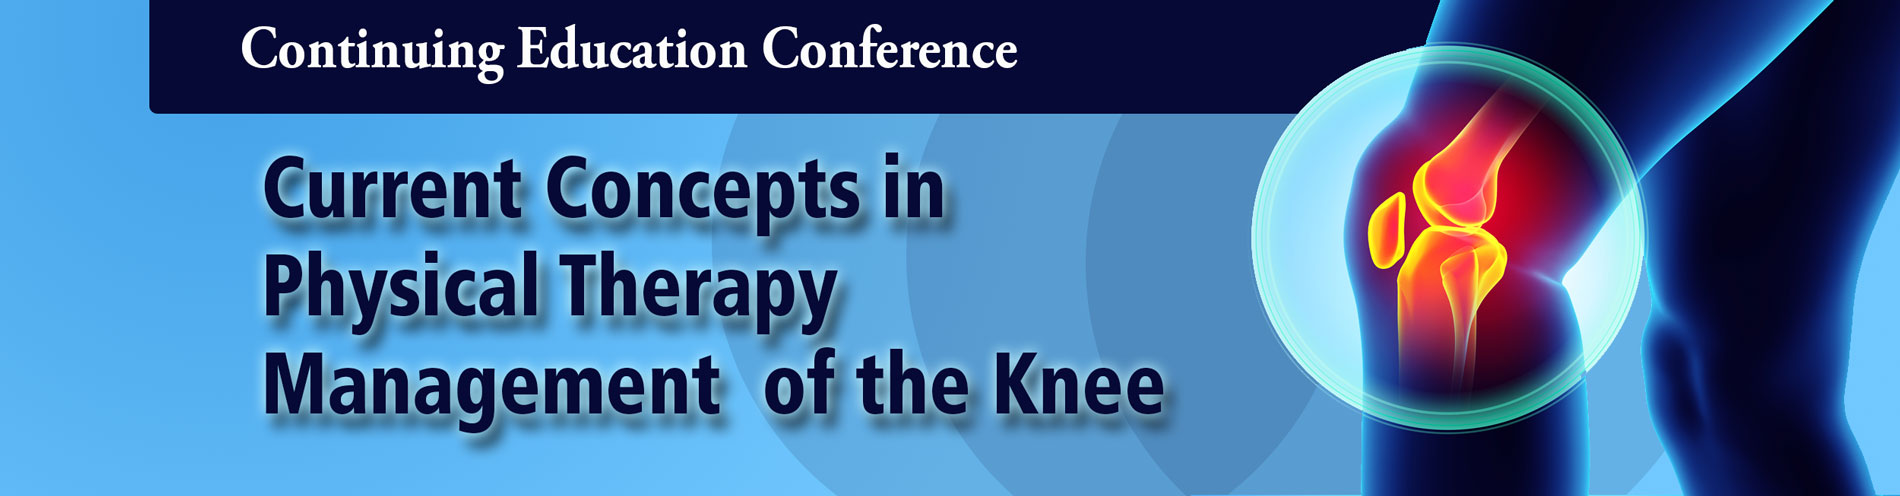 Current Concept in Physical Therapy Management of the Kneed